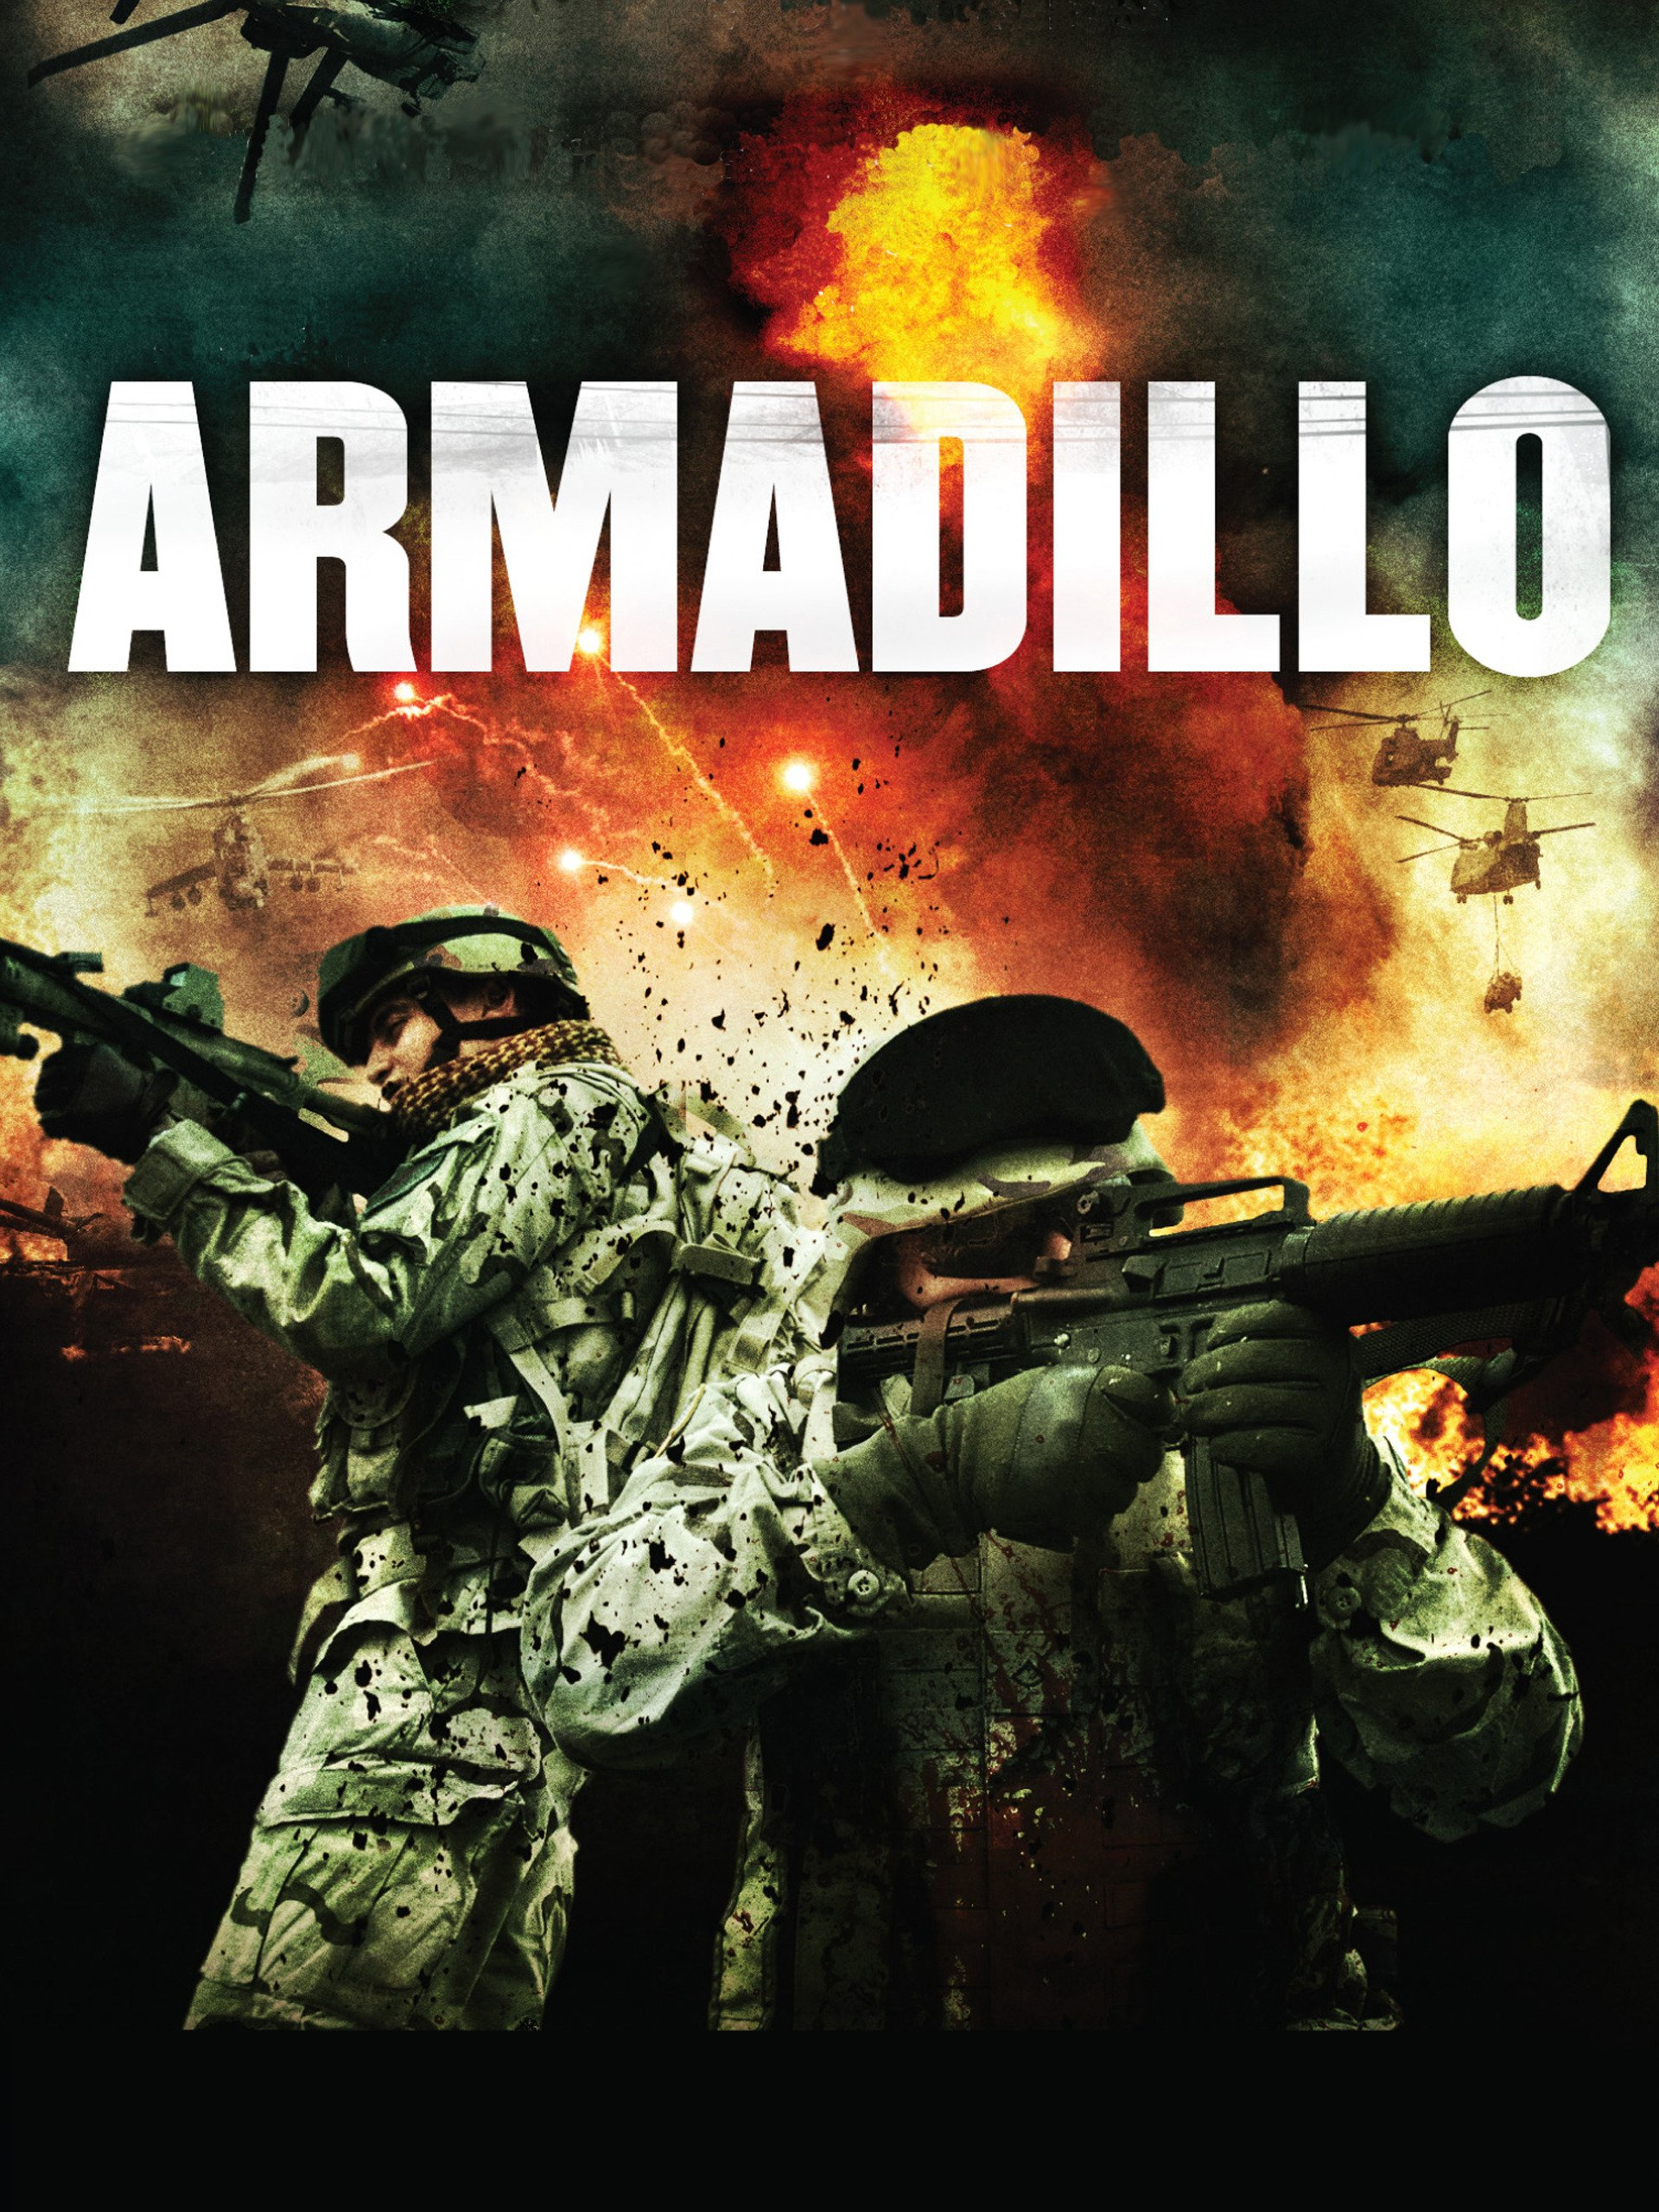 Movies based on the Afghanistan war - Armadillo